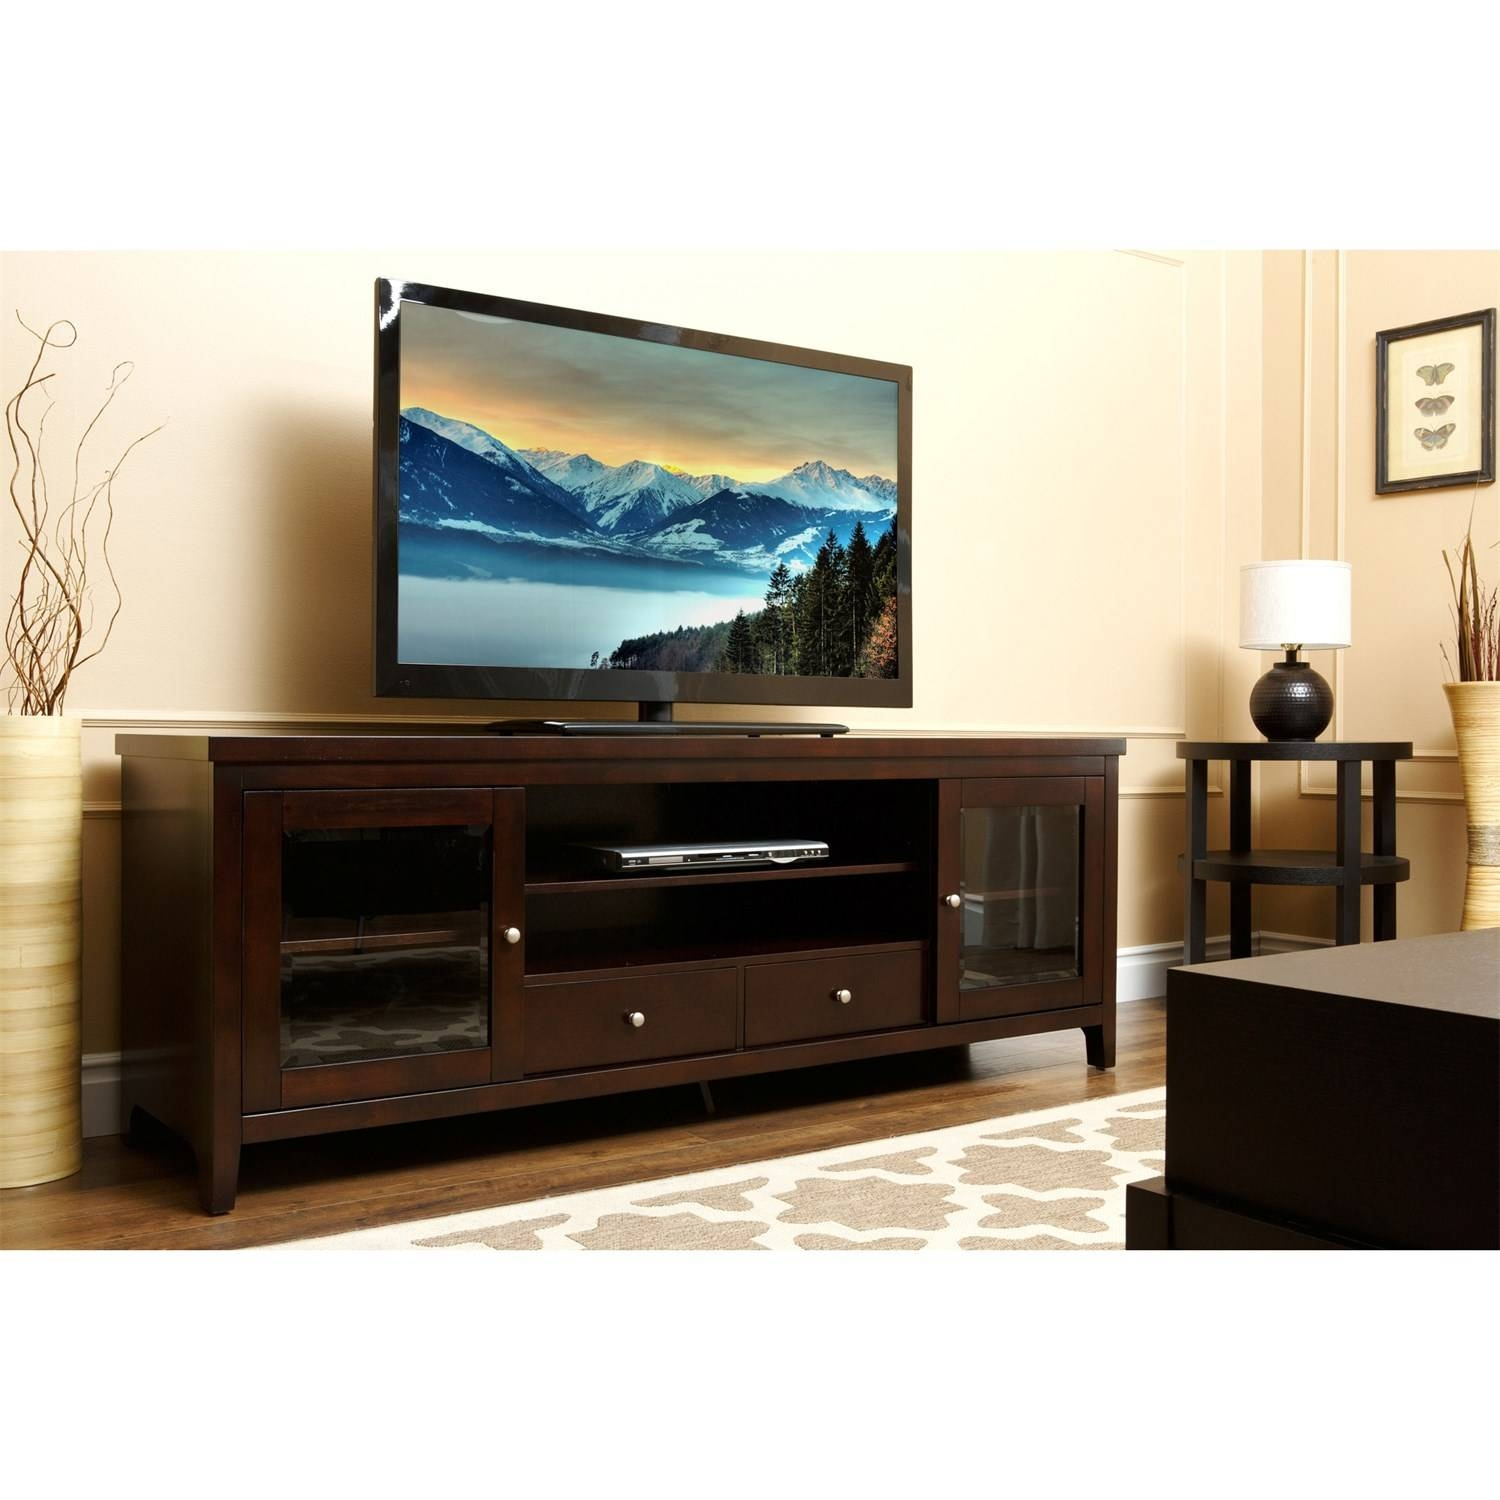 Abbyson Living Hm-5420-1340 Winsome Console Tv Stand In Espresso within Expresso Tv Stands (Image 2 of 15)